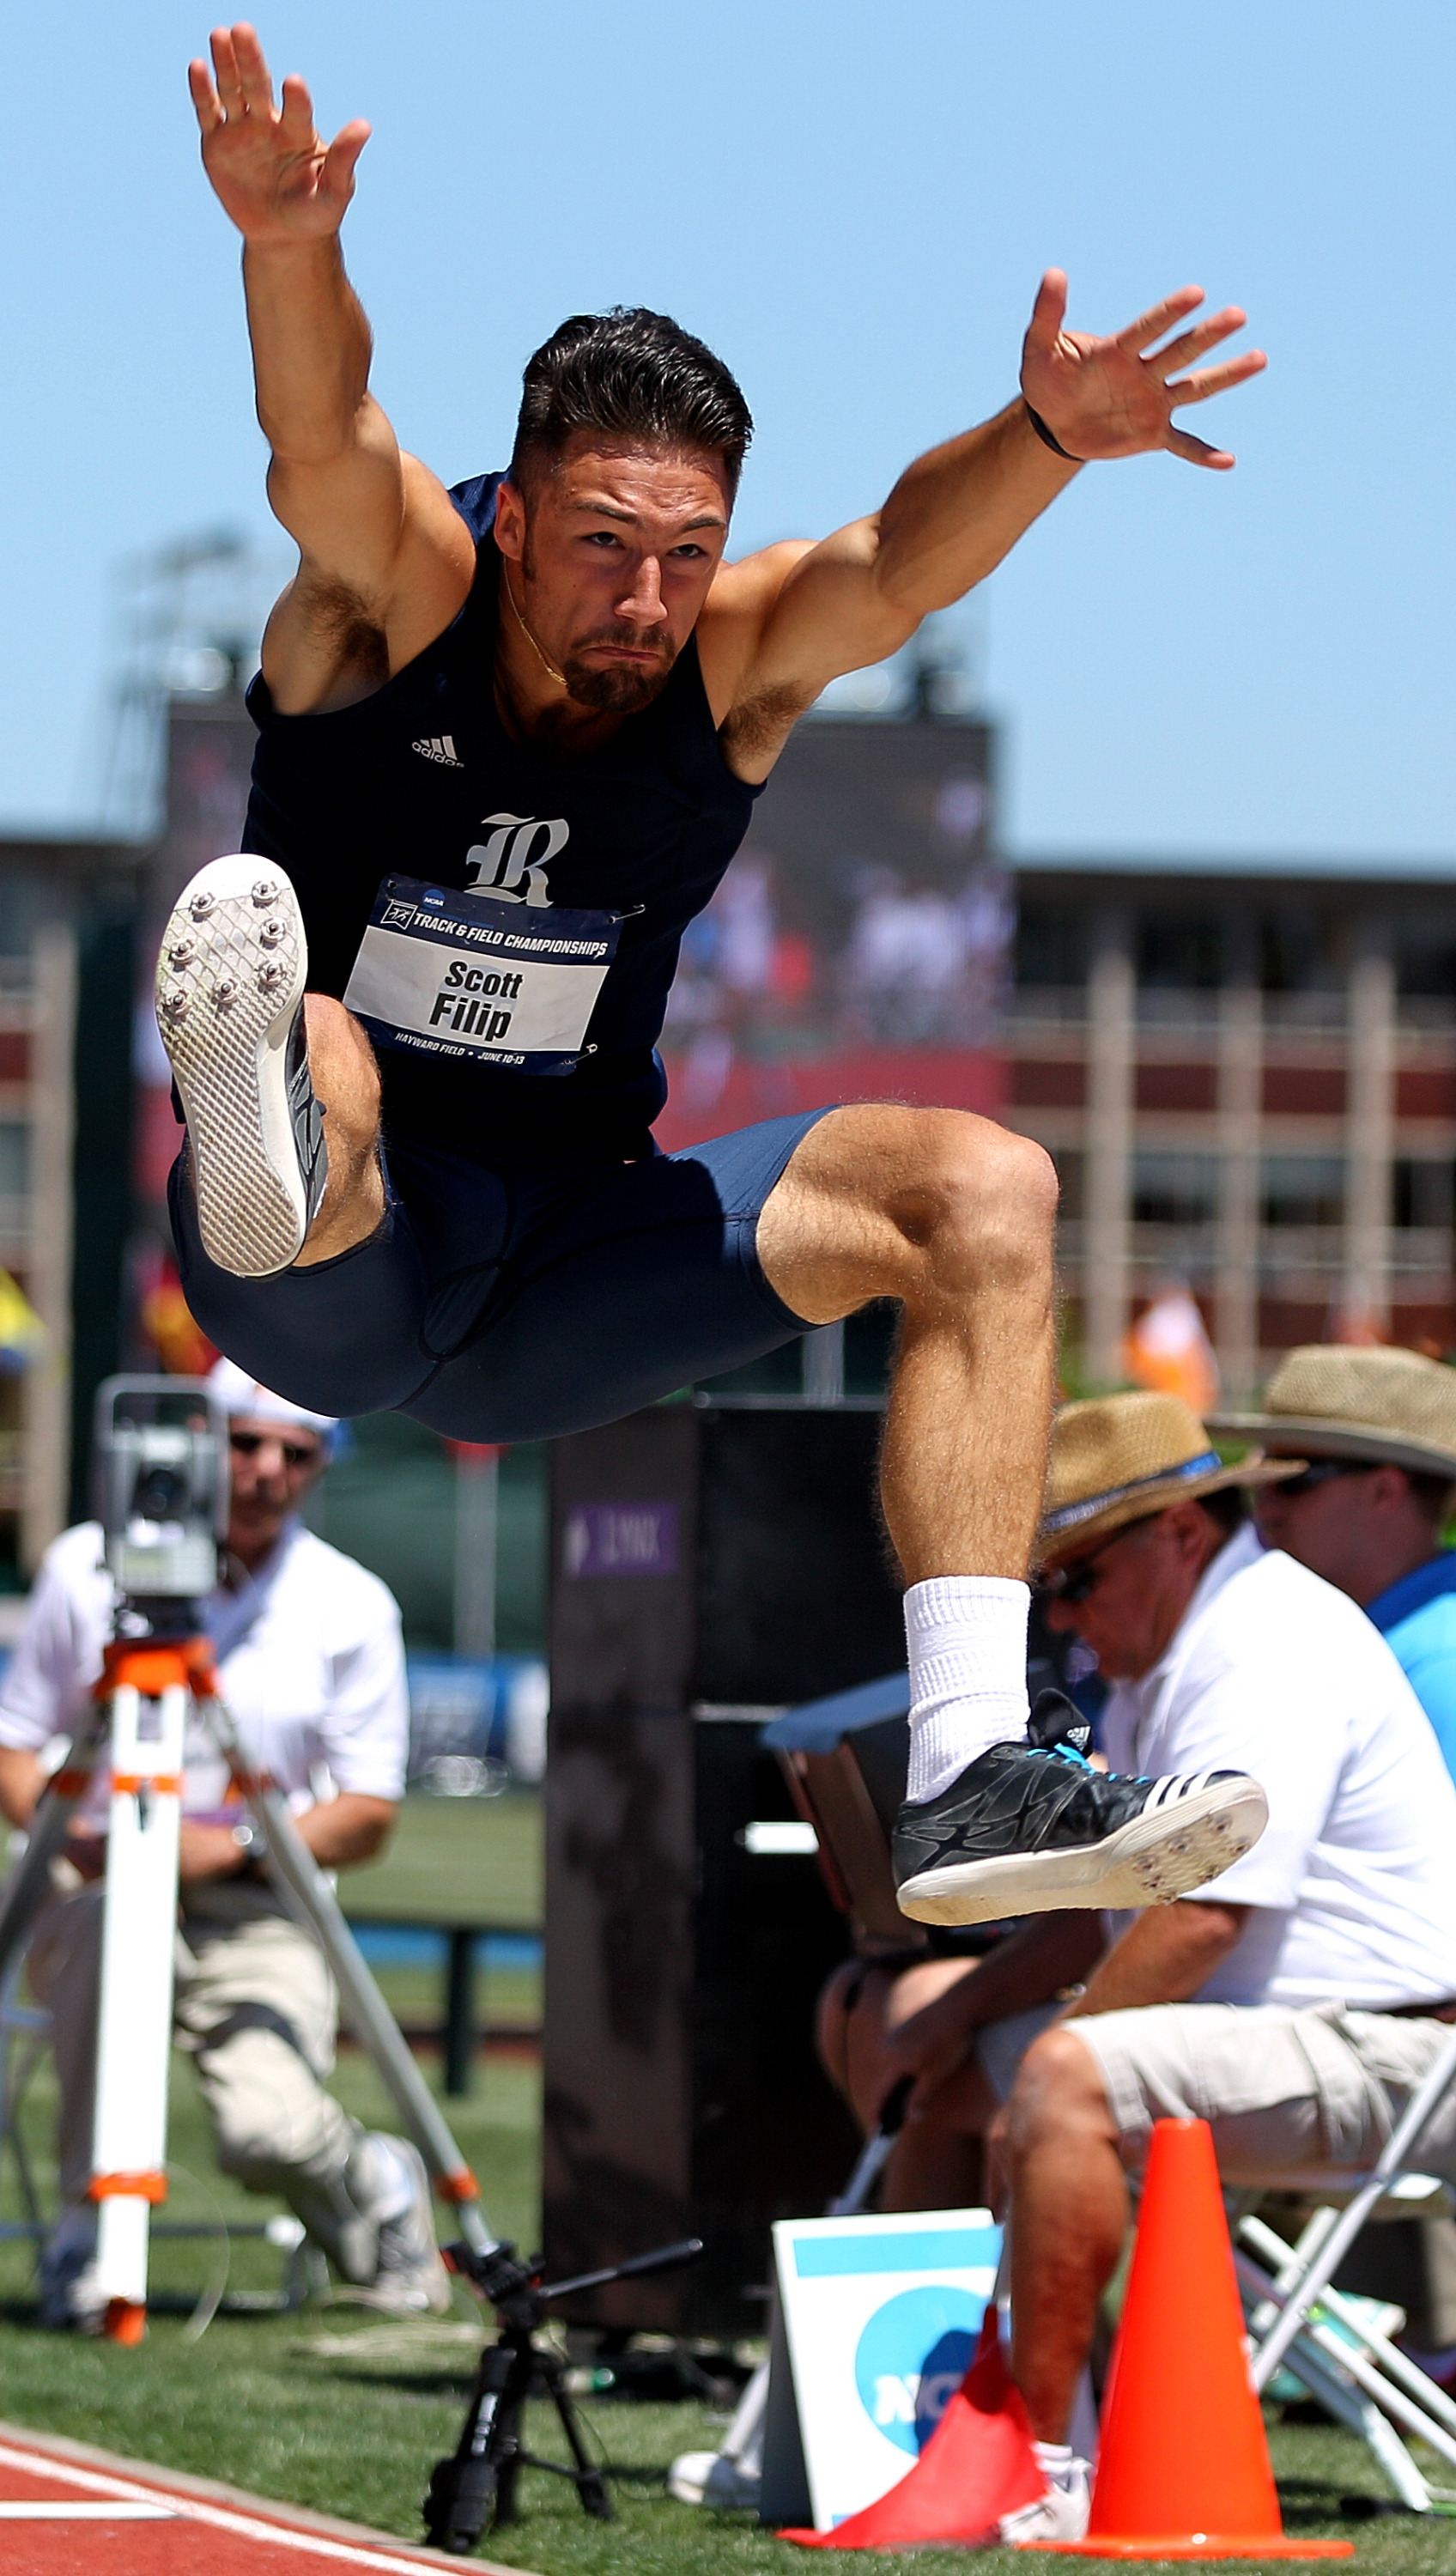 Scott Filip placed 8th in the decathlon at the NCAA Outdoor Championships.